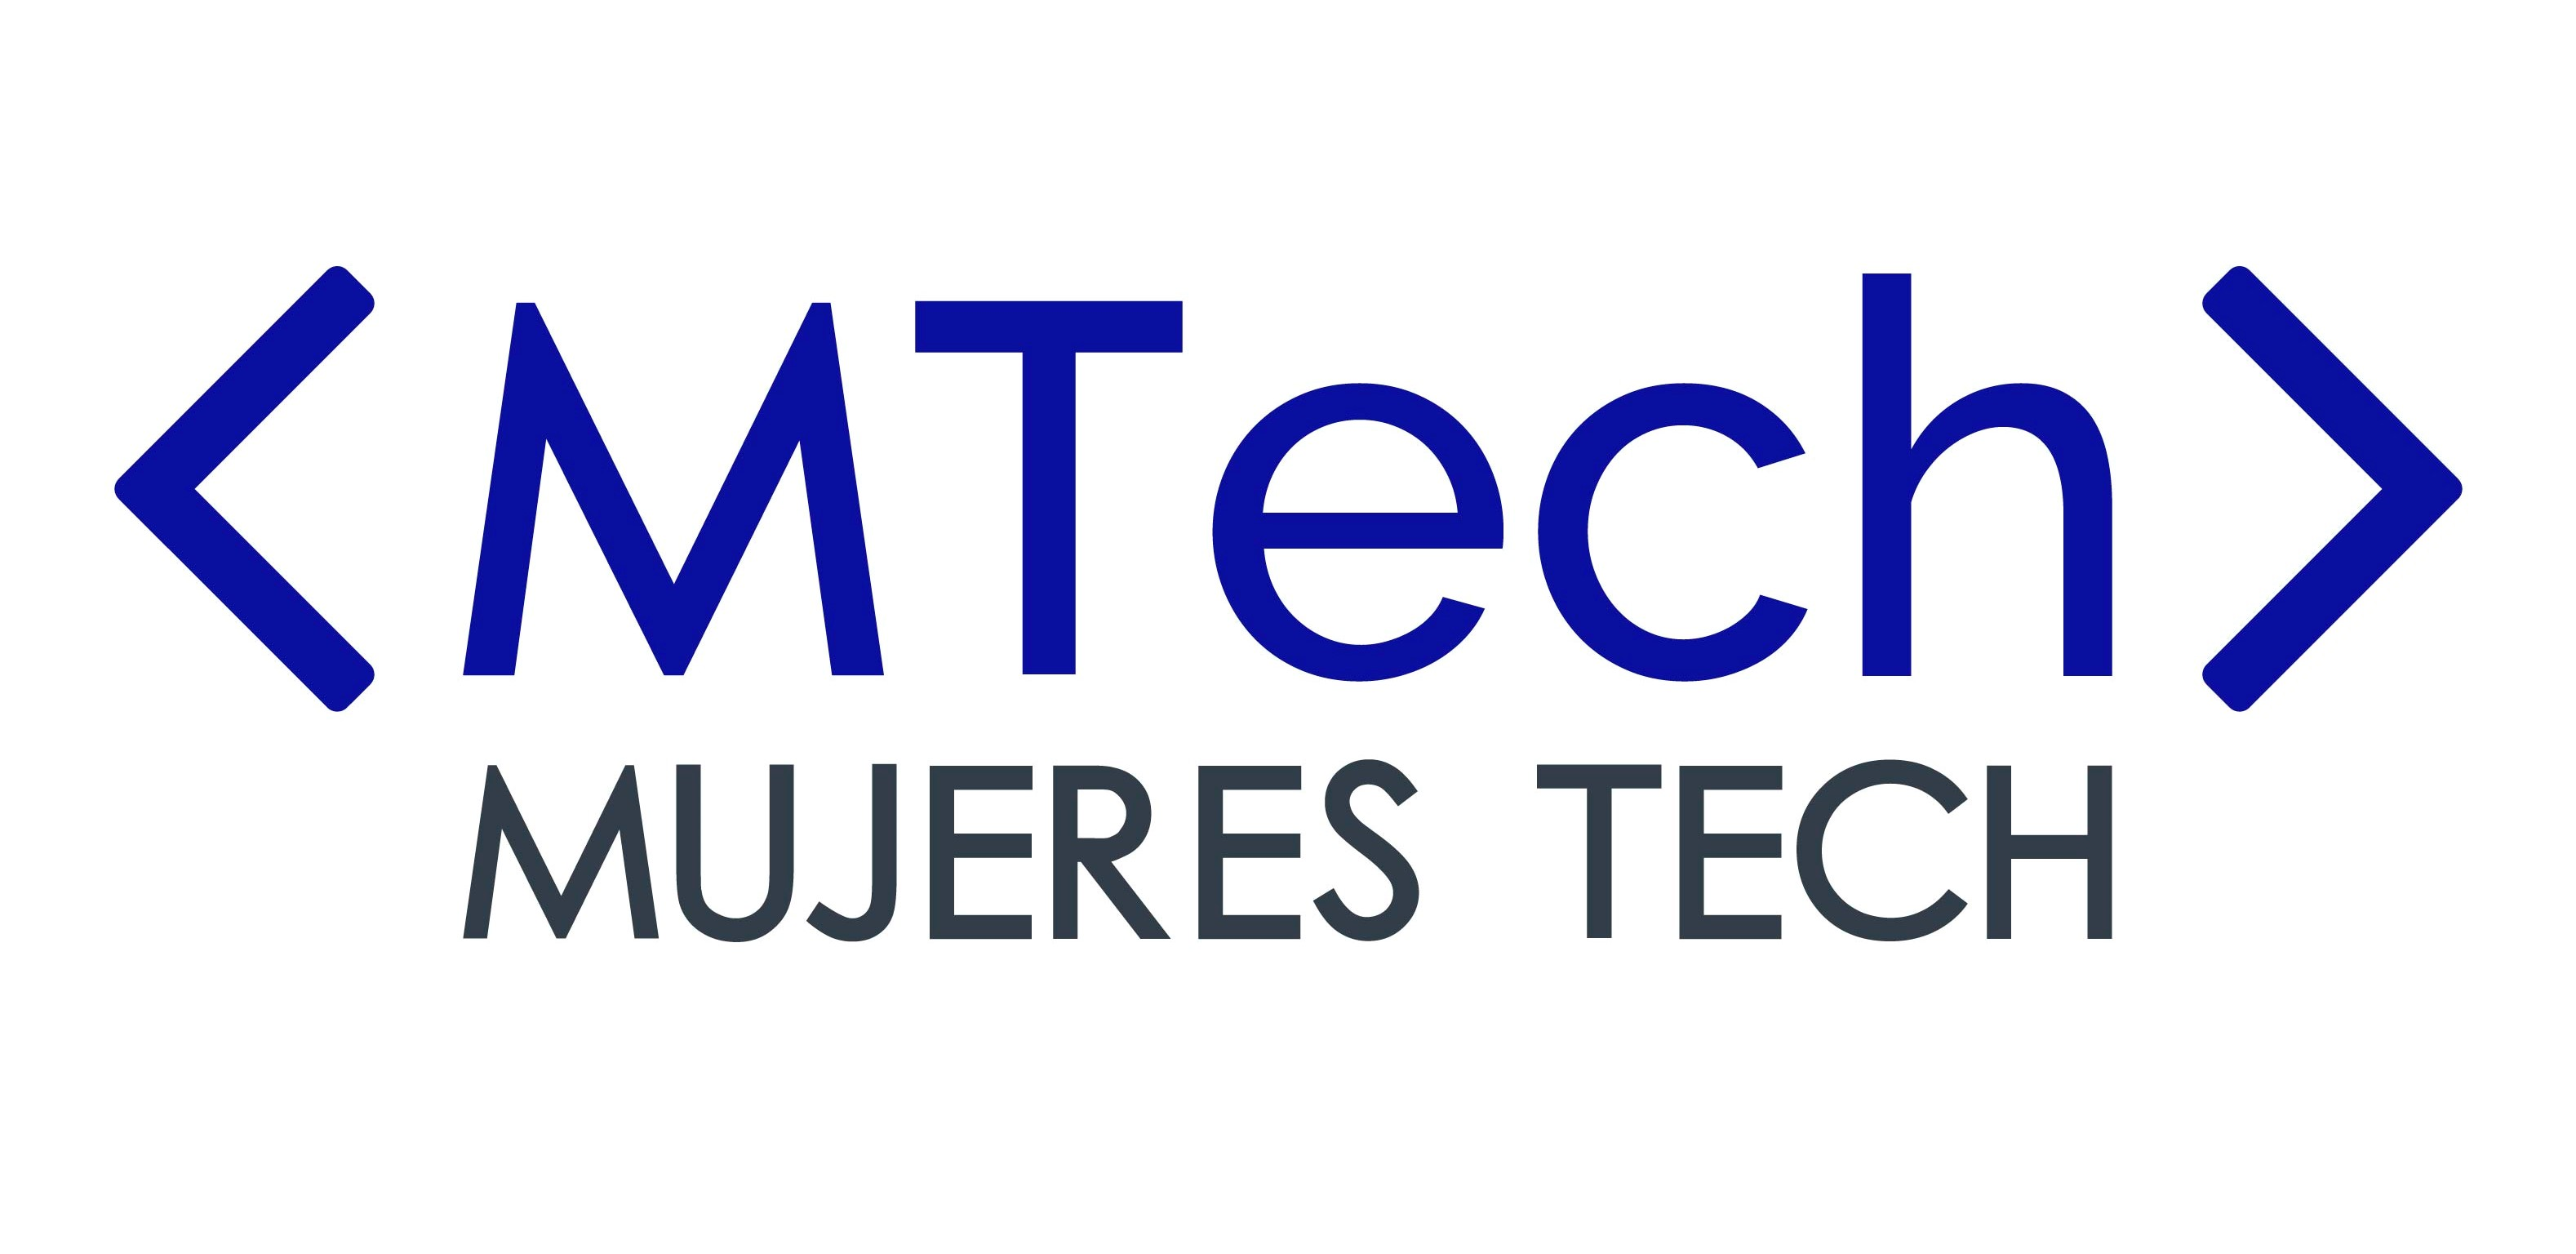 Mujeres Tech